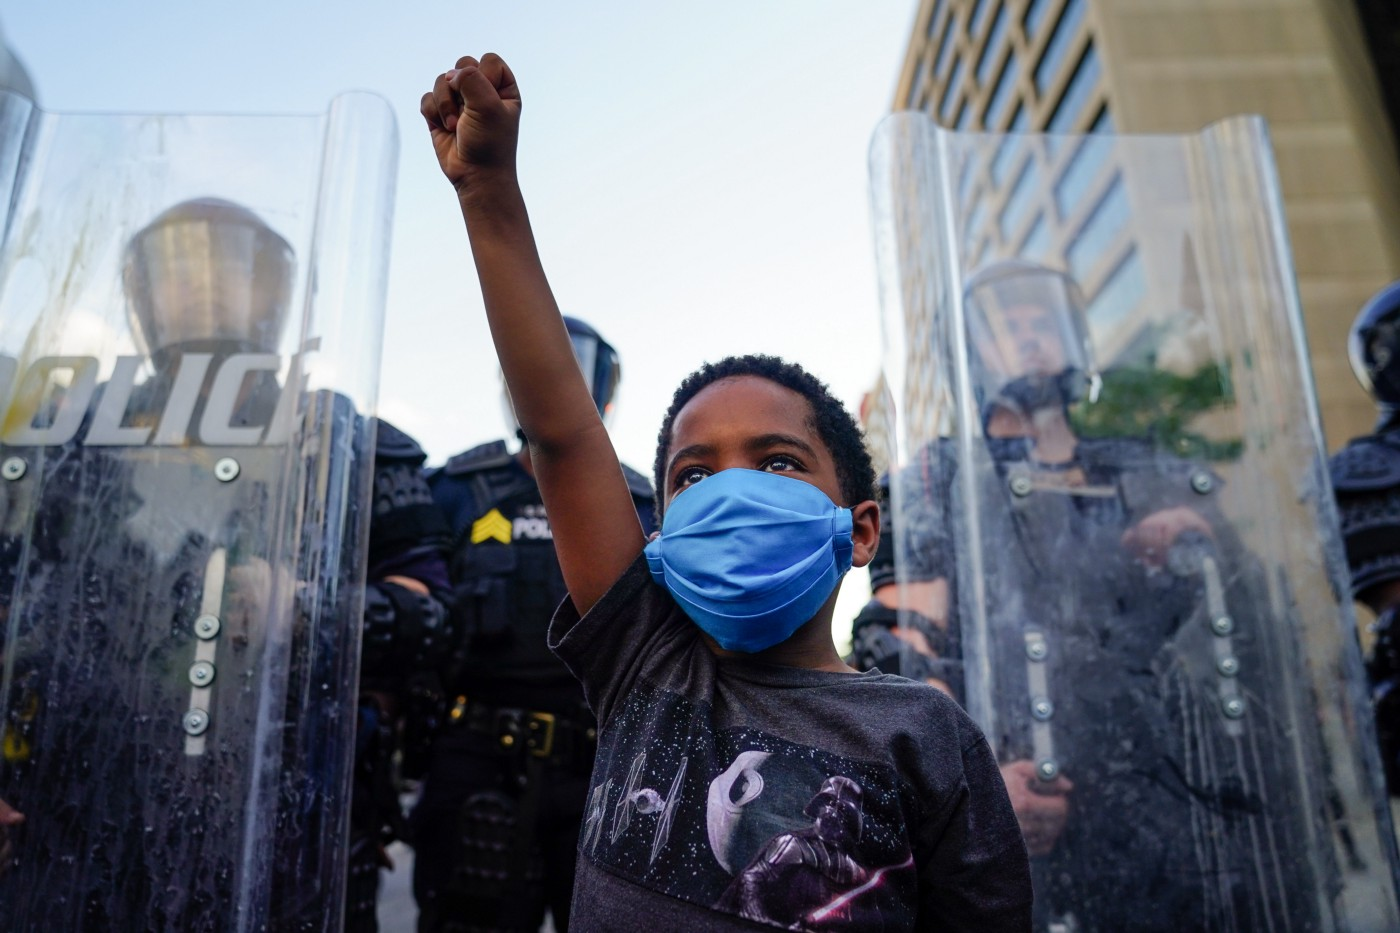 A small Black child raises his fist in front of police.